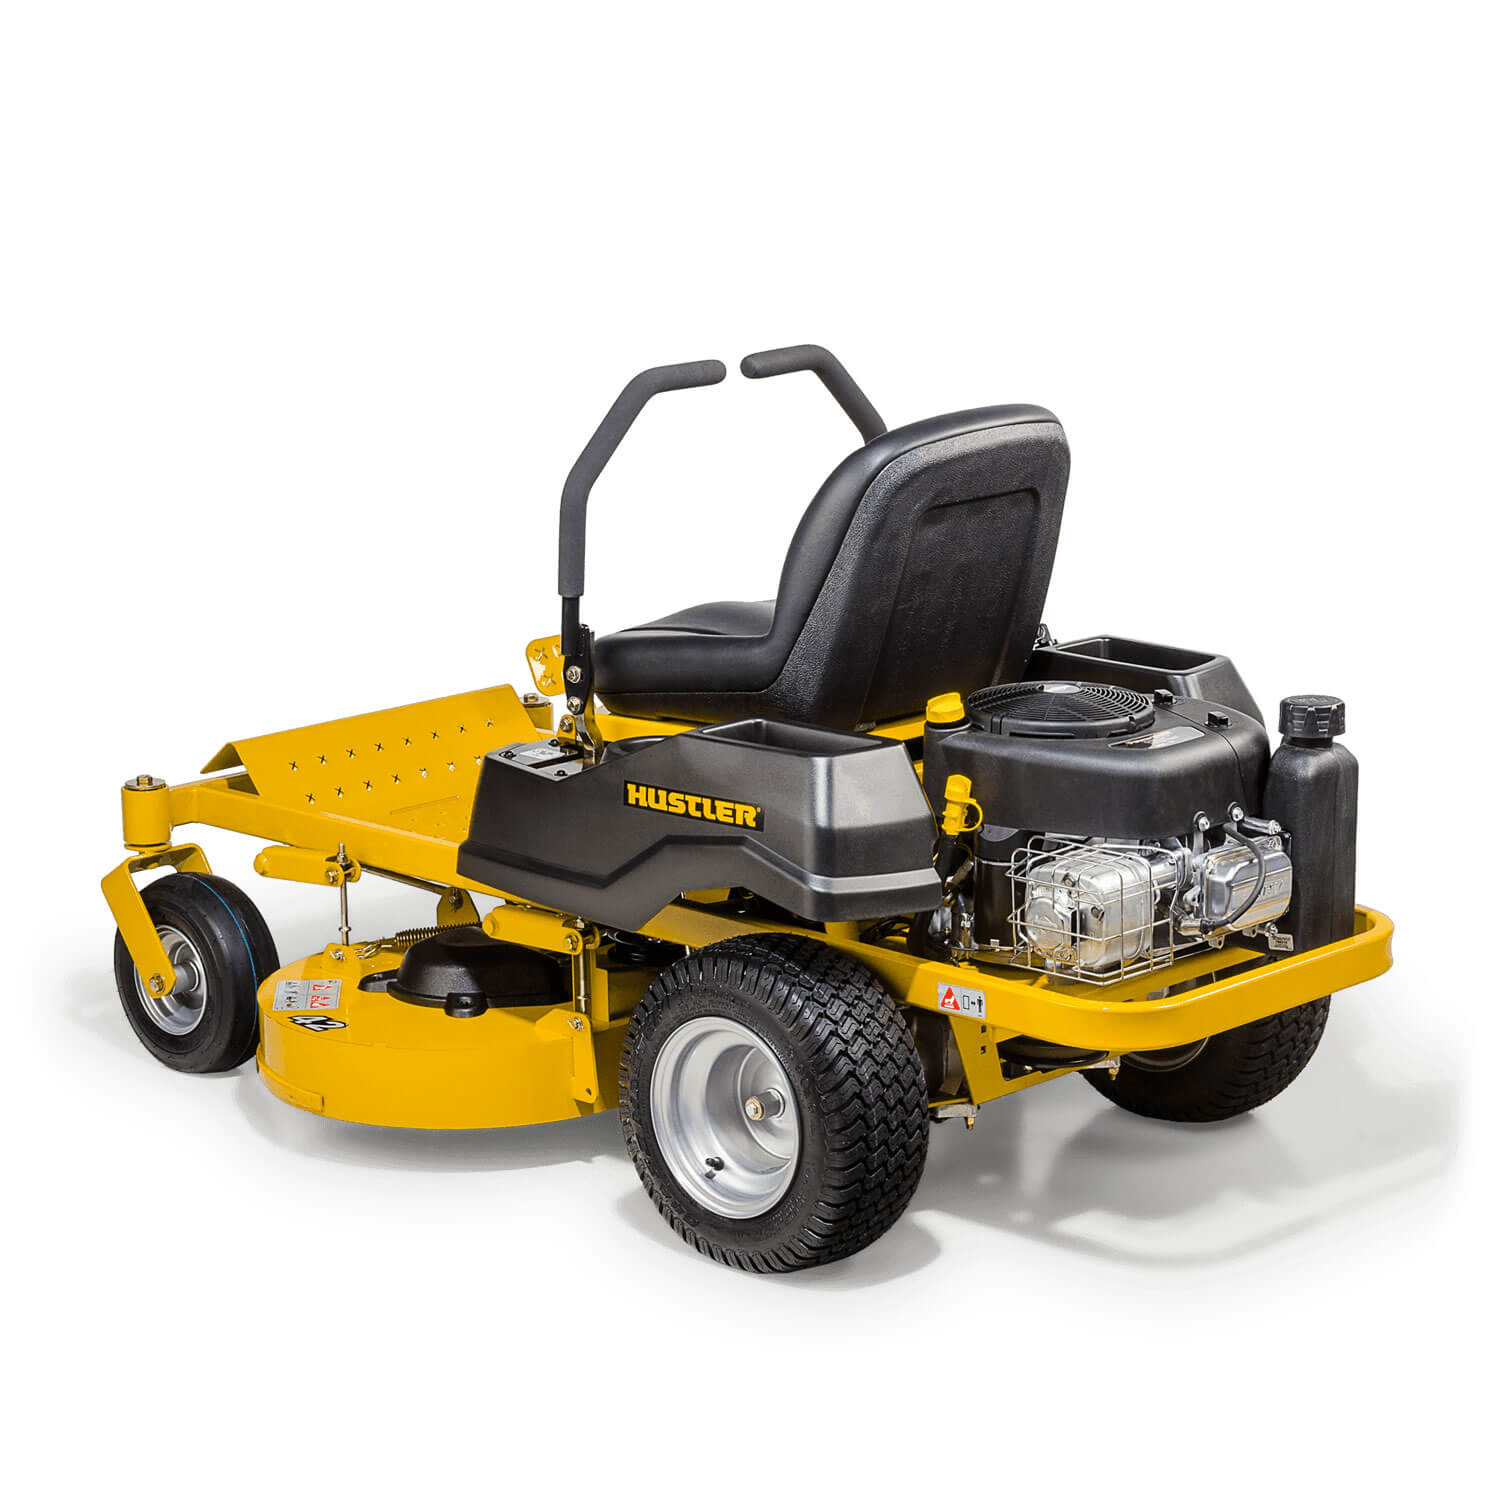 Image of the rear three quarters of a yellow mower showing the trim edge of the deck